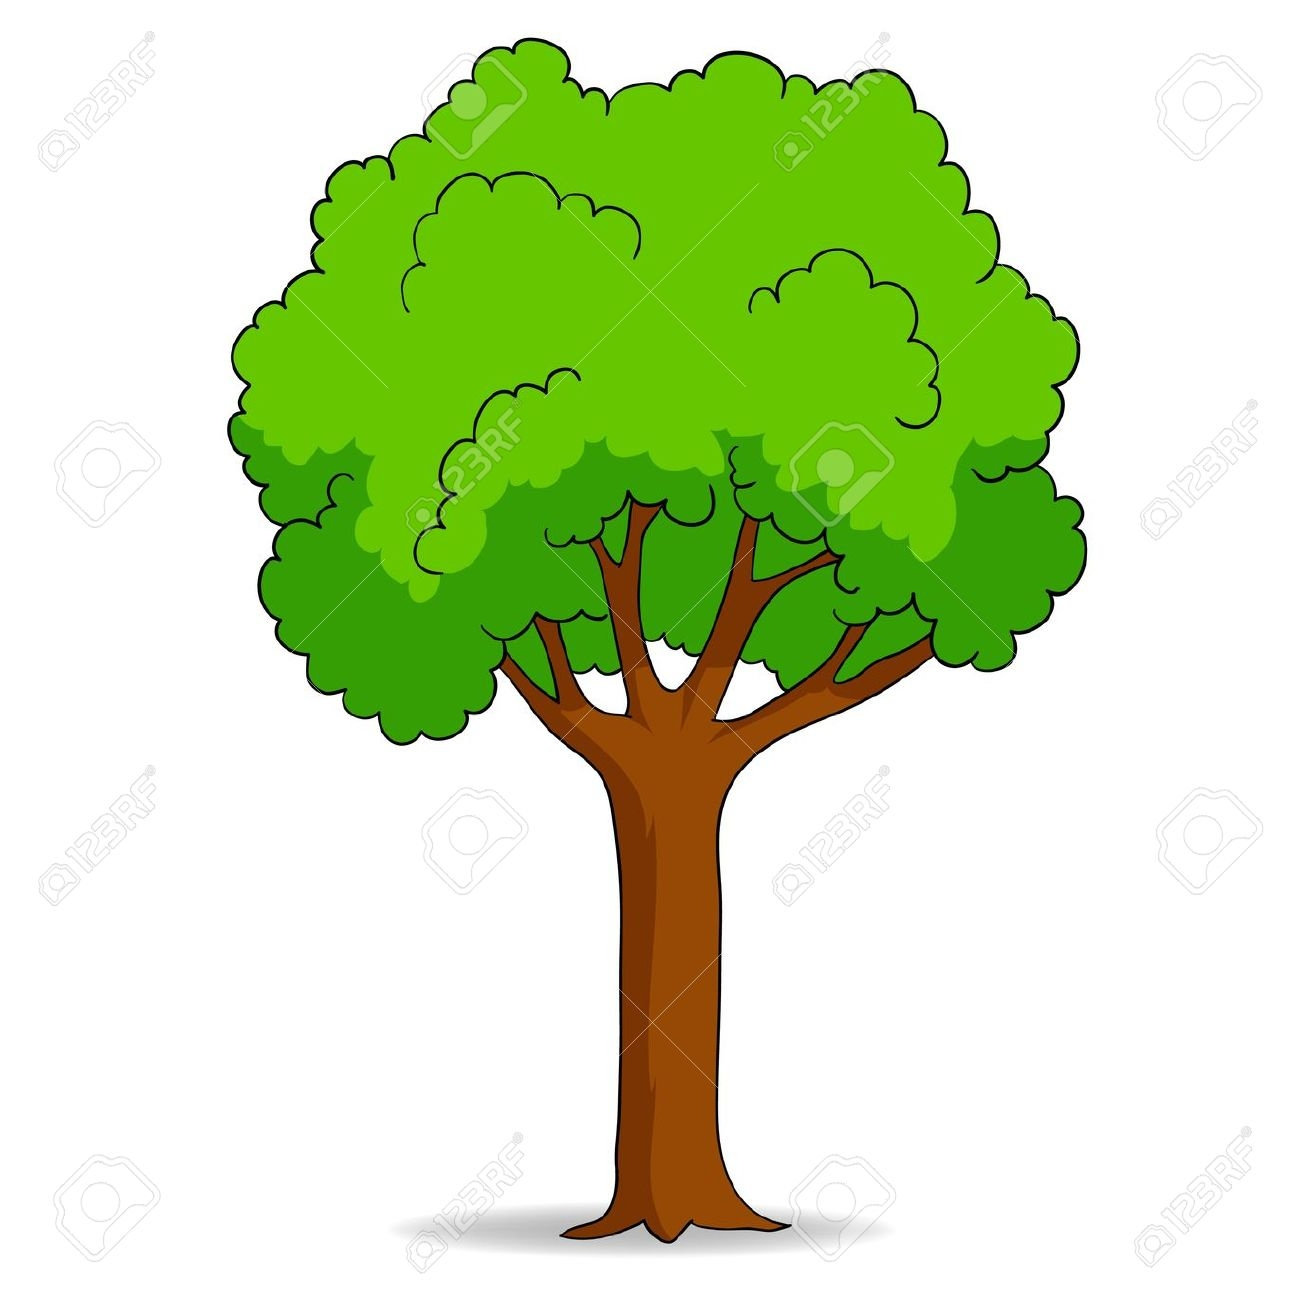 Deciduous Tree Clipart.